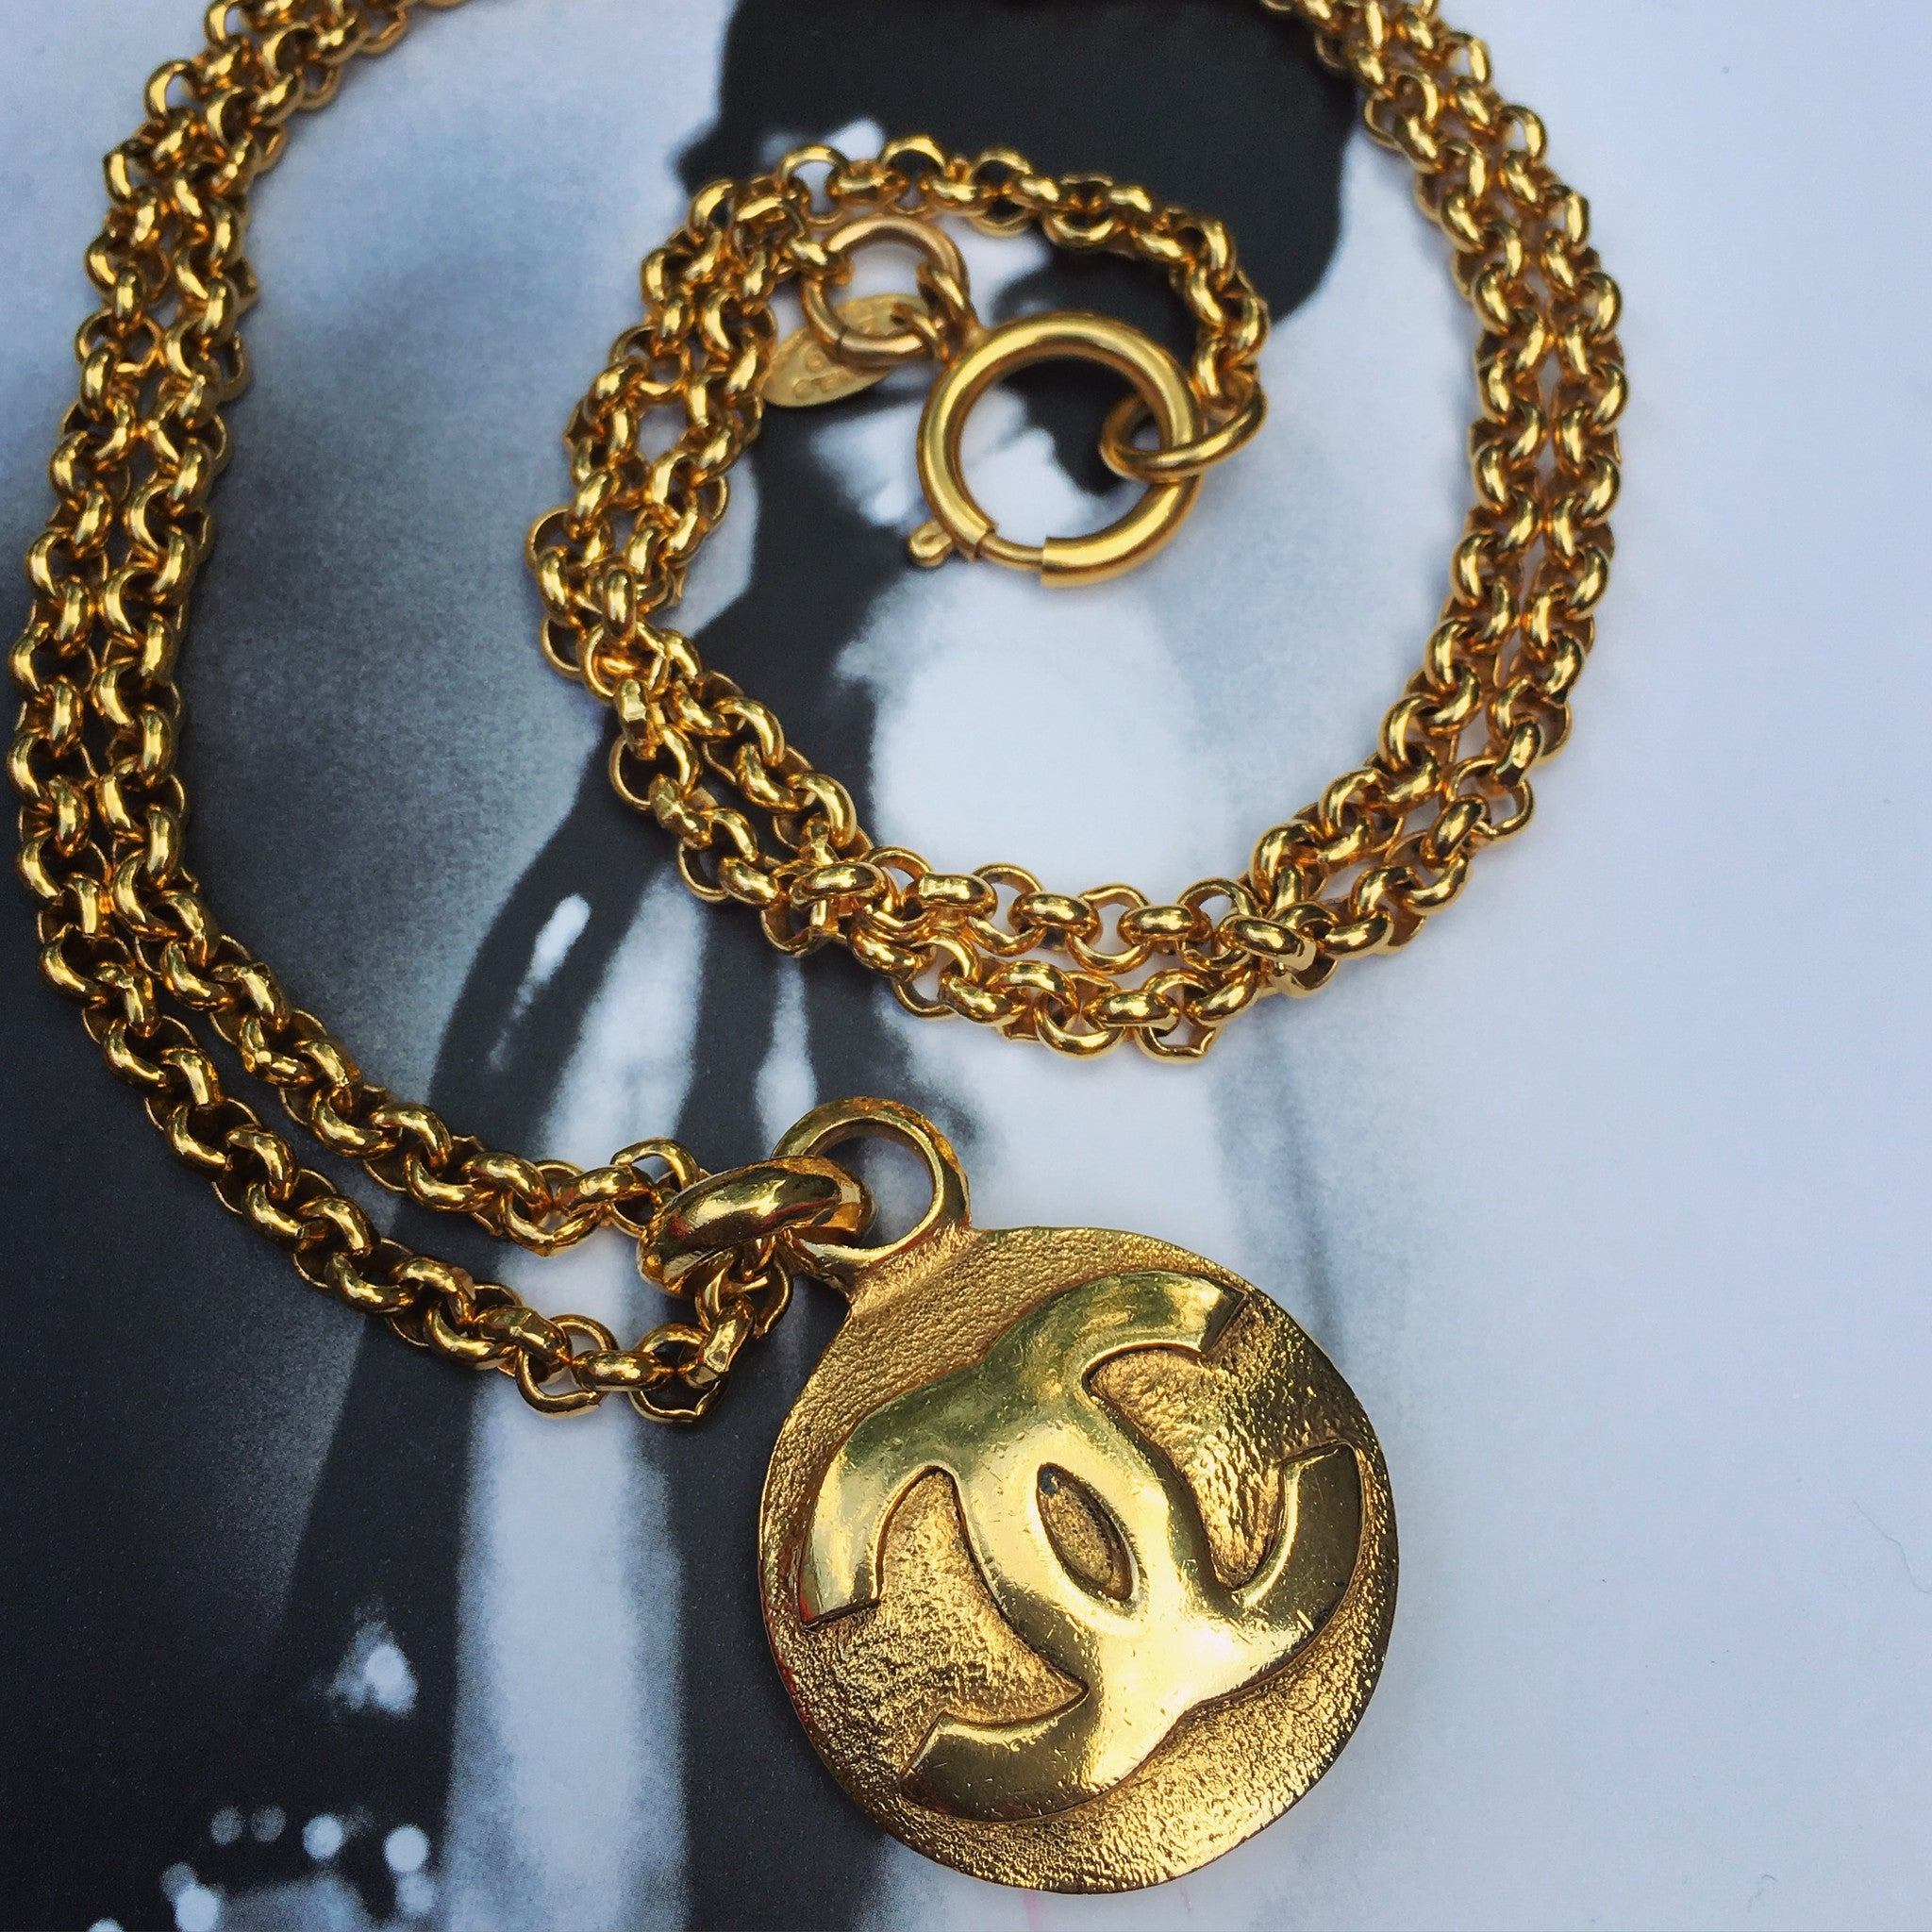 CHANEL Gold Necklace with CC Pendant